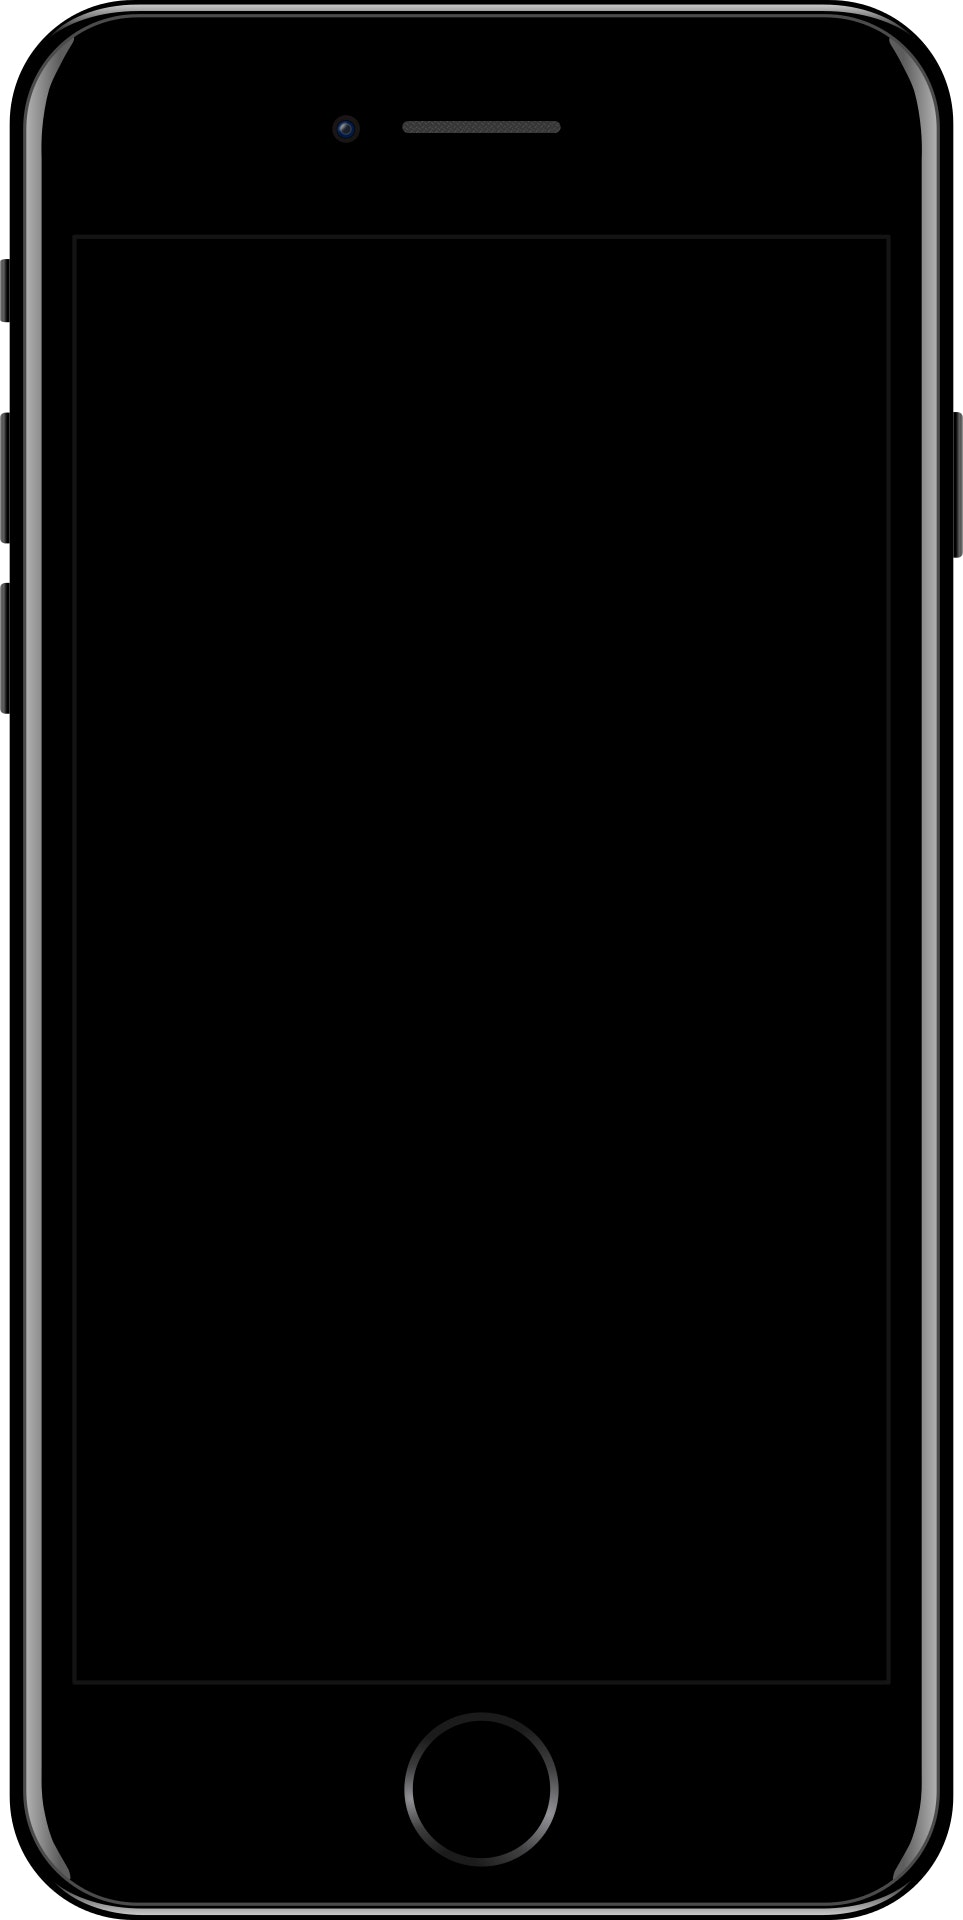 Jet Black Iphone 7 Free Stock Photo